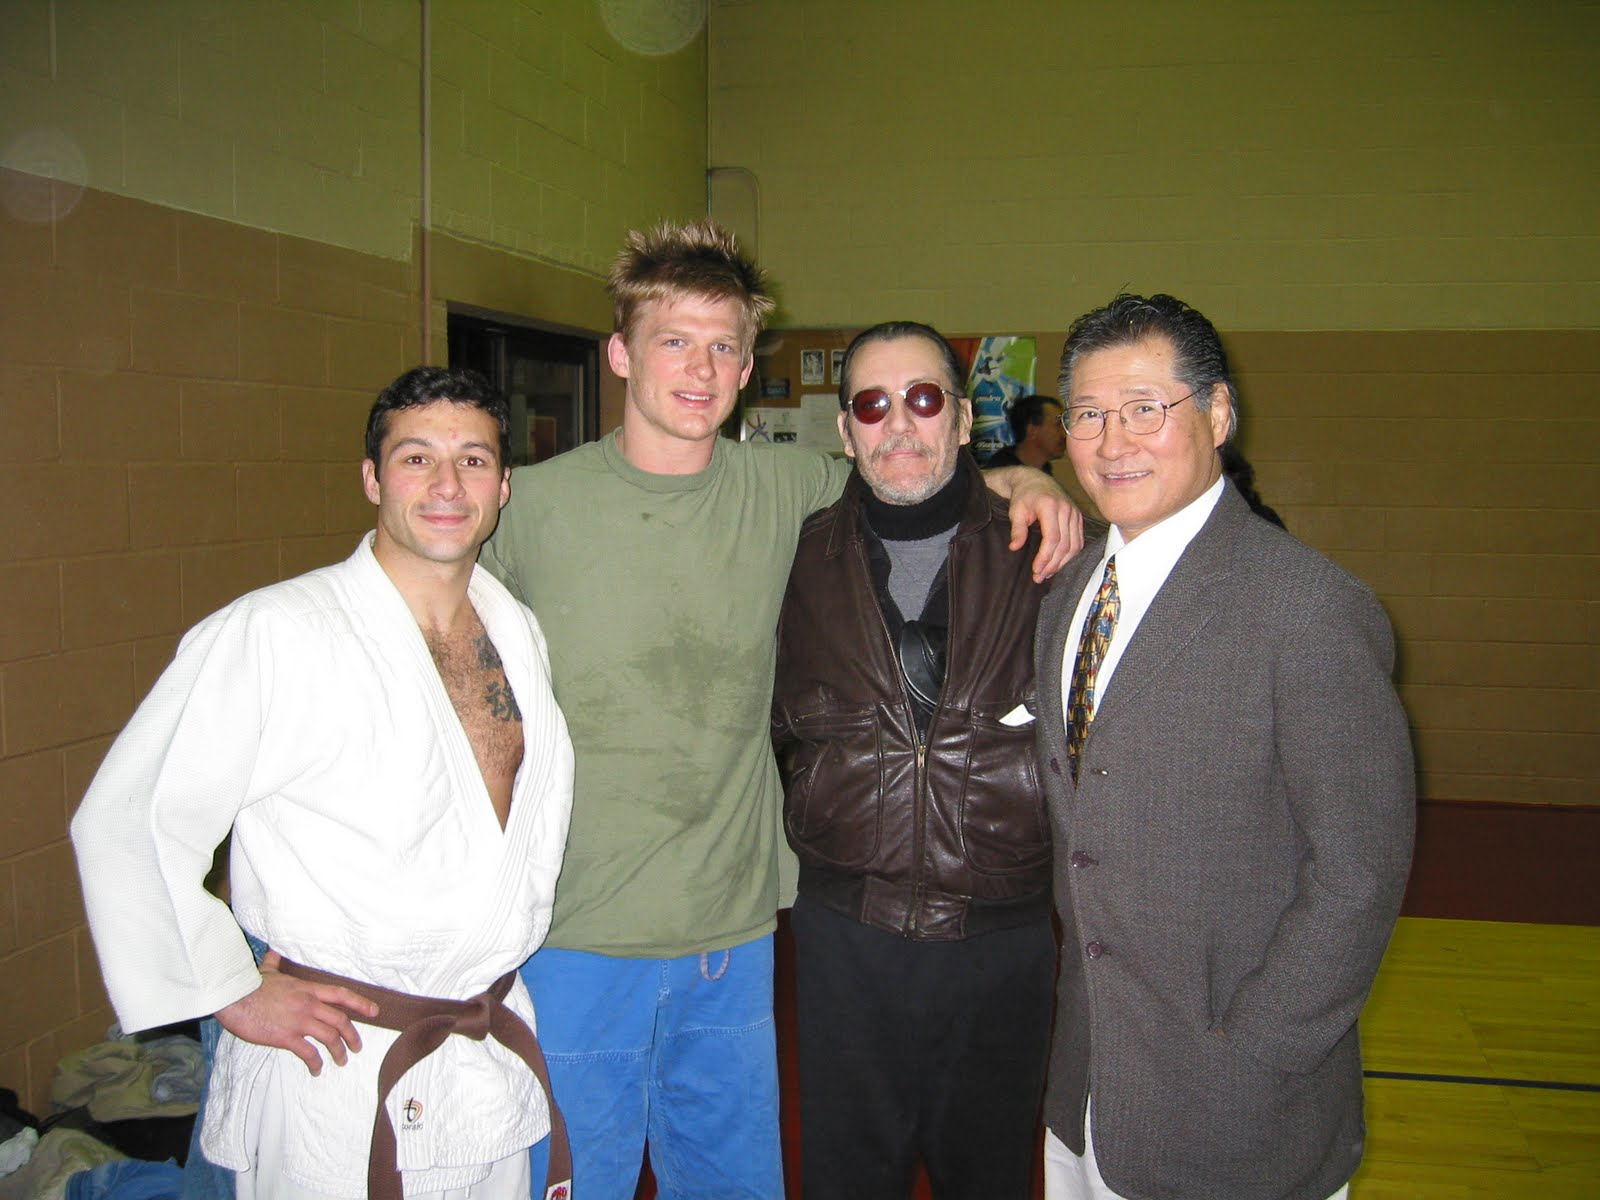 Damian Ross, David Ellis, Carl Cestari and Yoshisada Yonezuka at Damian's Judo Black Belt promotion.